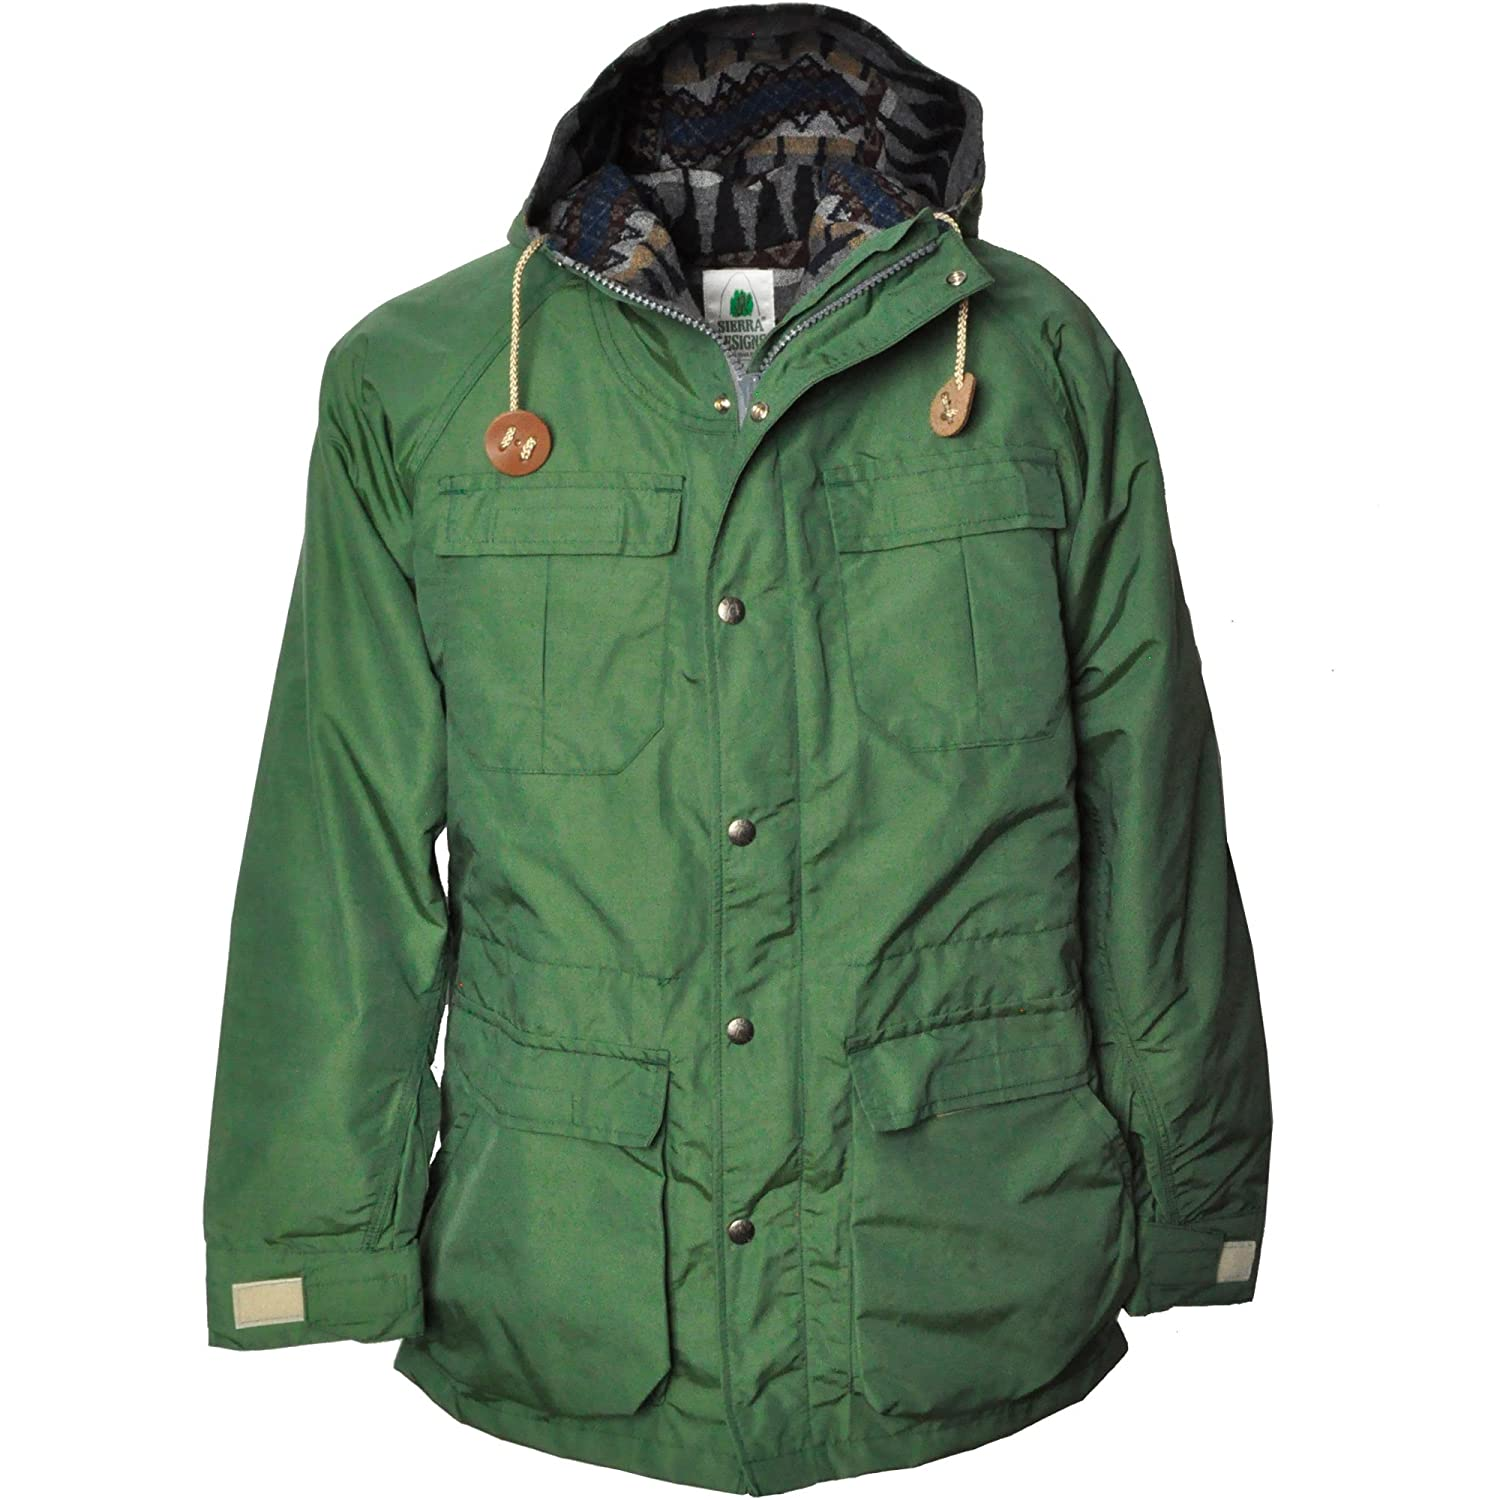 SIERRA DESIGNS (シエラデザインズ) PENDLETON LINED MOUNTAIN PARKA 7922 GREEN B01LPUN3BQ M